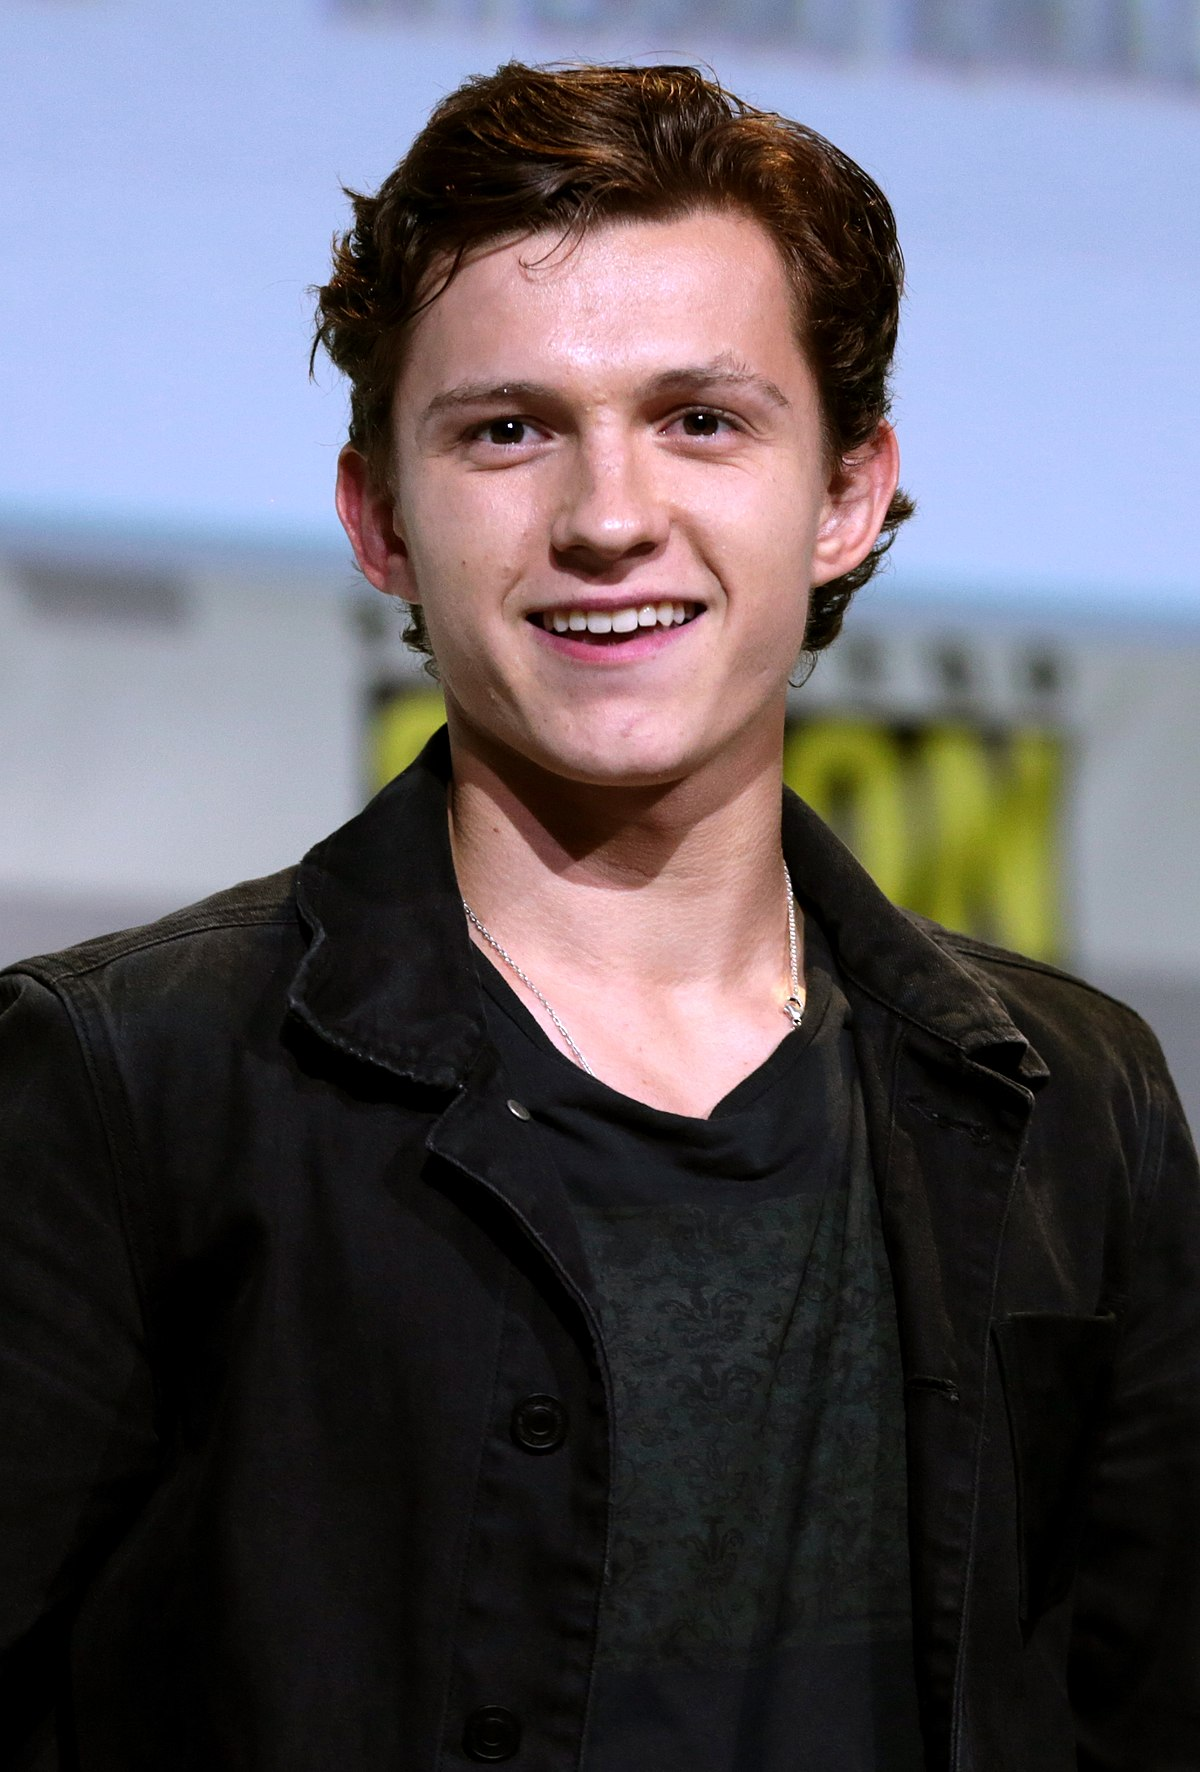 tom holland actor wikipedia la enciclopedia libre